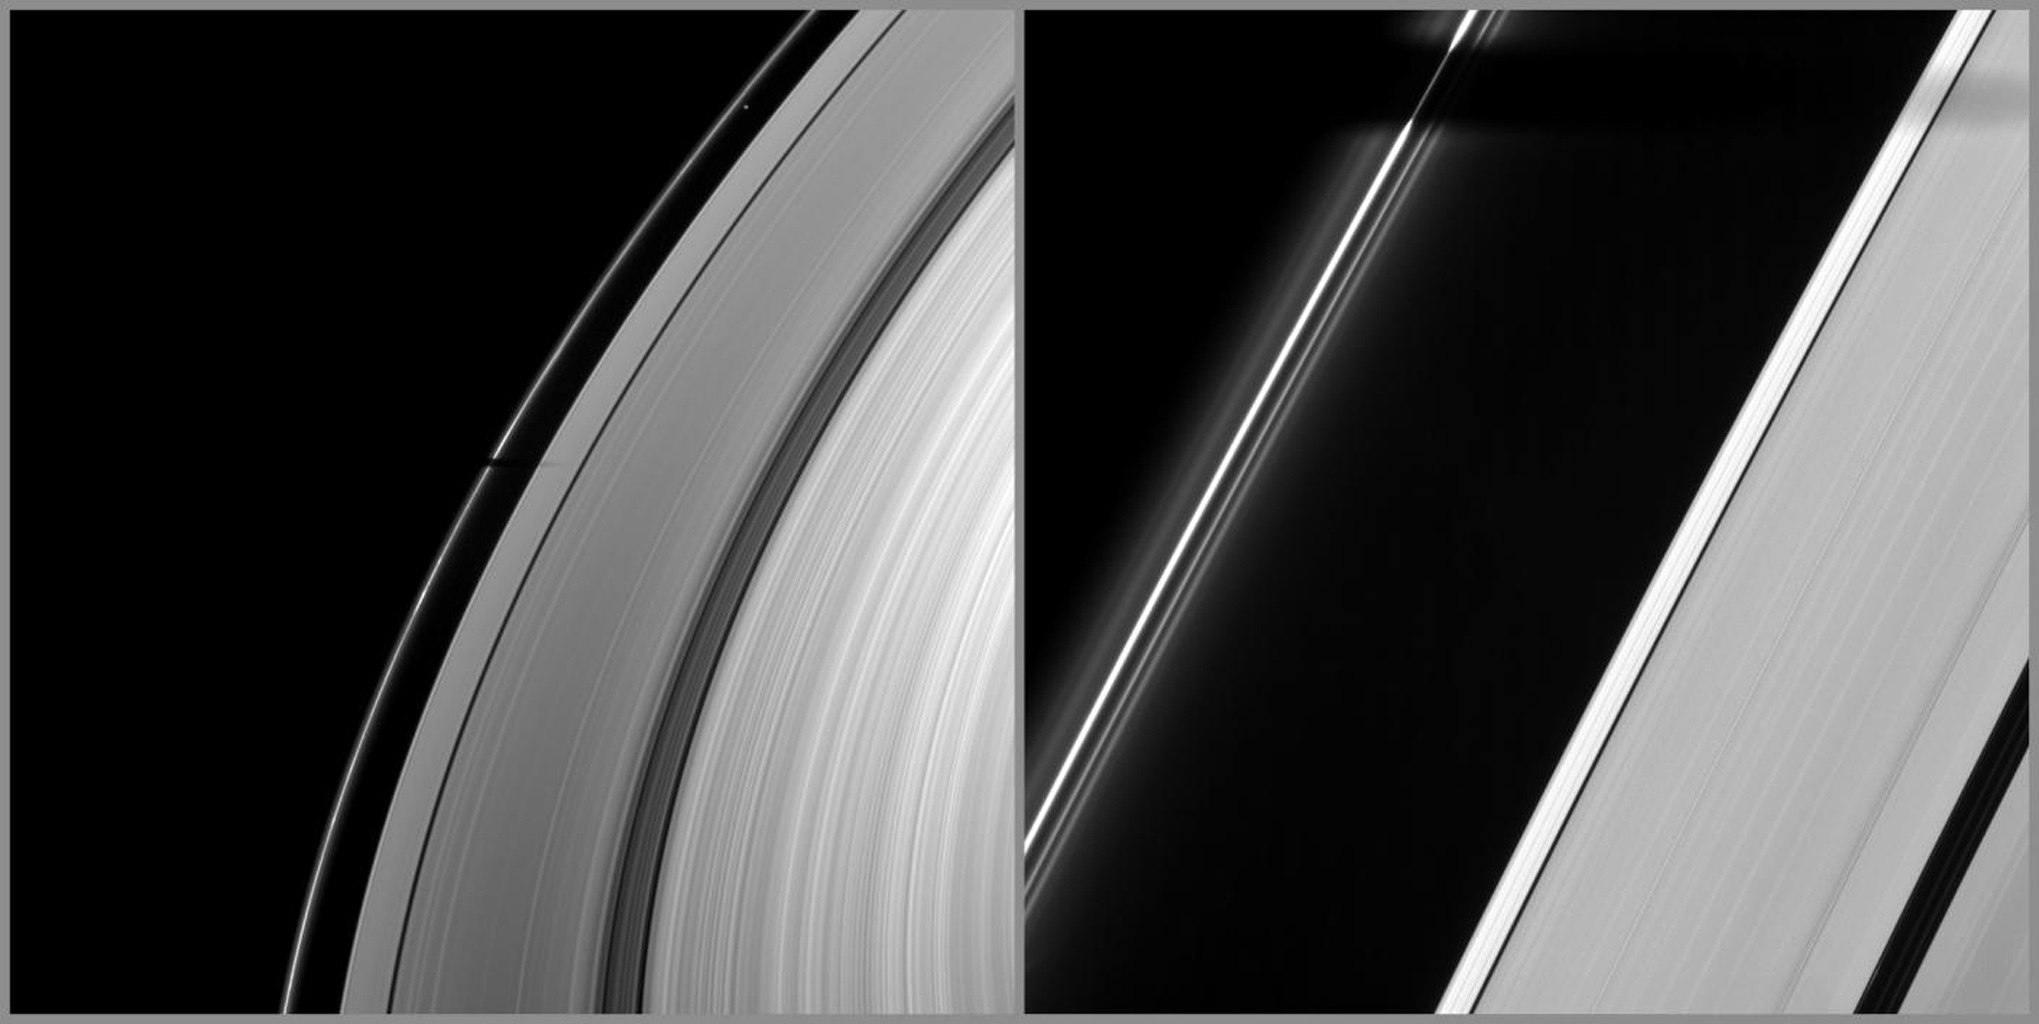 Joining other moons in heralding the coming of Saturn's August 2009 equinox, the moon Tethys casts its shadow across Saturn's F ring and part of the A ring in this image from NASA's Cassini spacecraft taken on March 20, 2009.